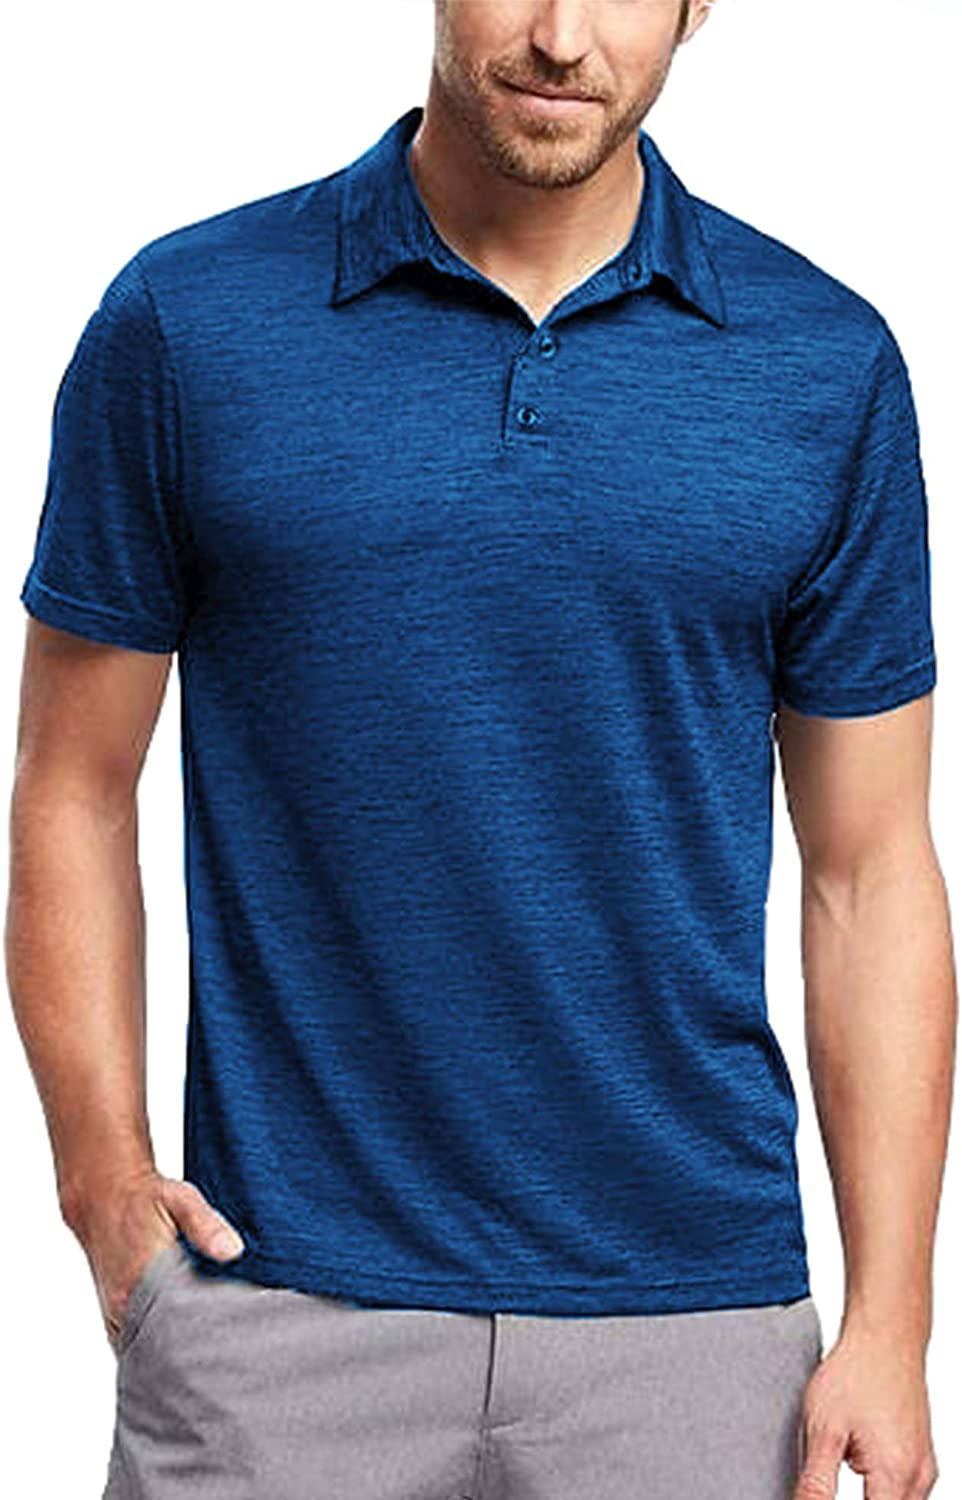 COOFANDY Men's Classic Slim Fit Polo Shirt Short Sleeve Solid Casual Shirts Athletic Golf Polo T-Shirt